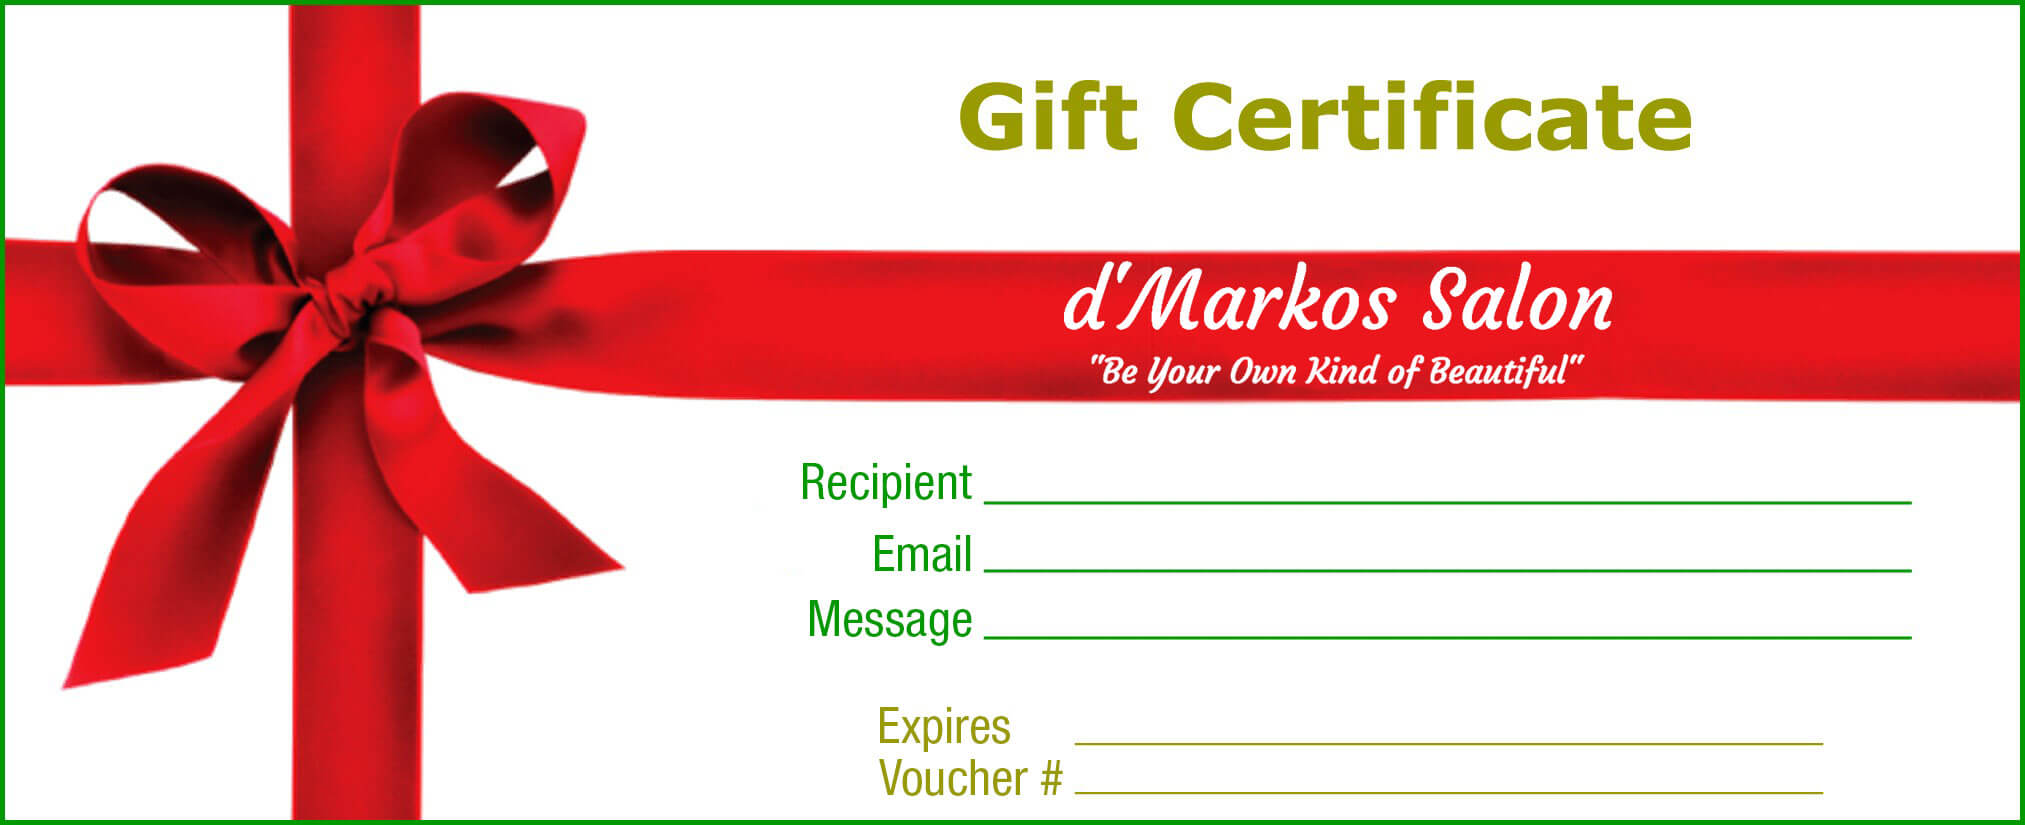 Gift certificate zoplardcbuscharter gift certificate yadclub Image collections